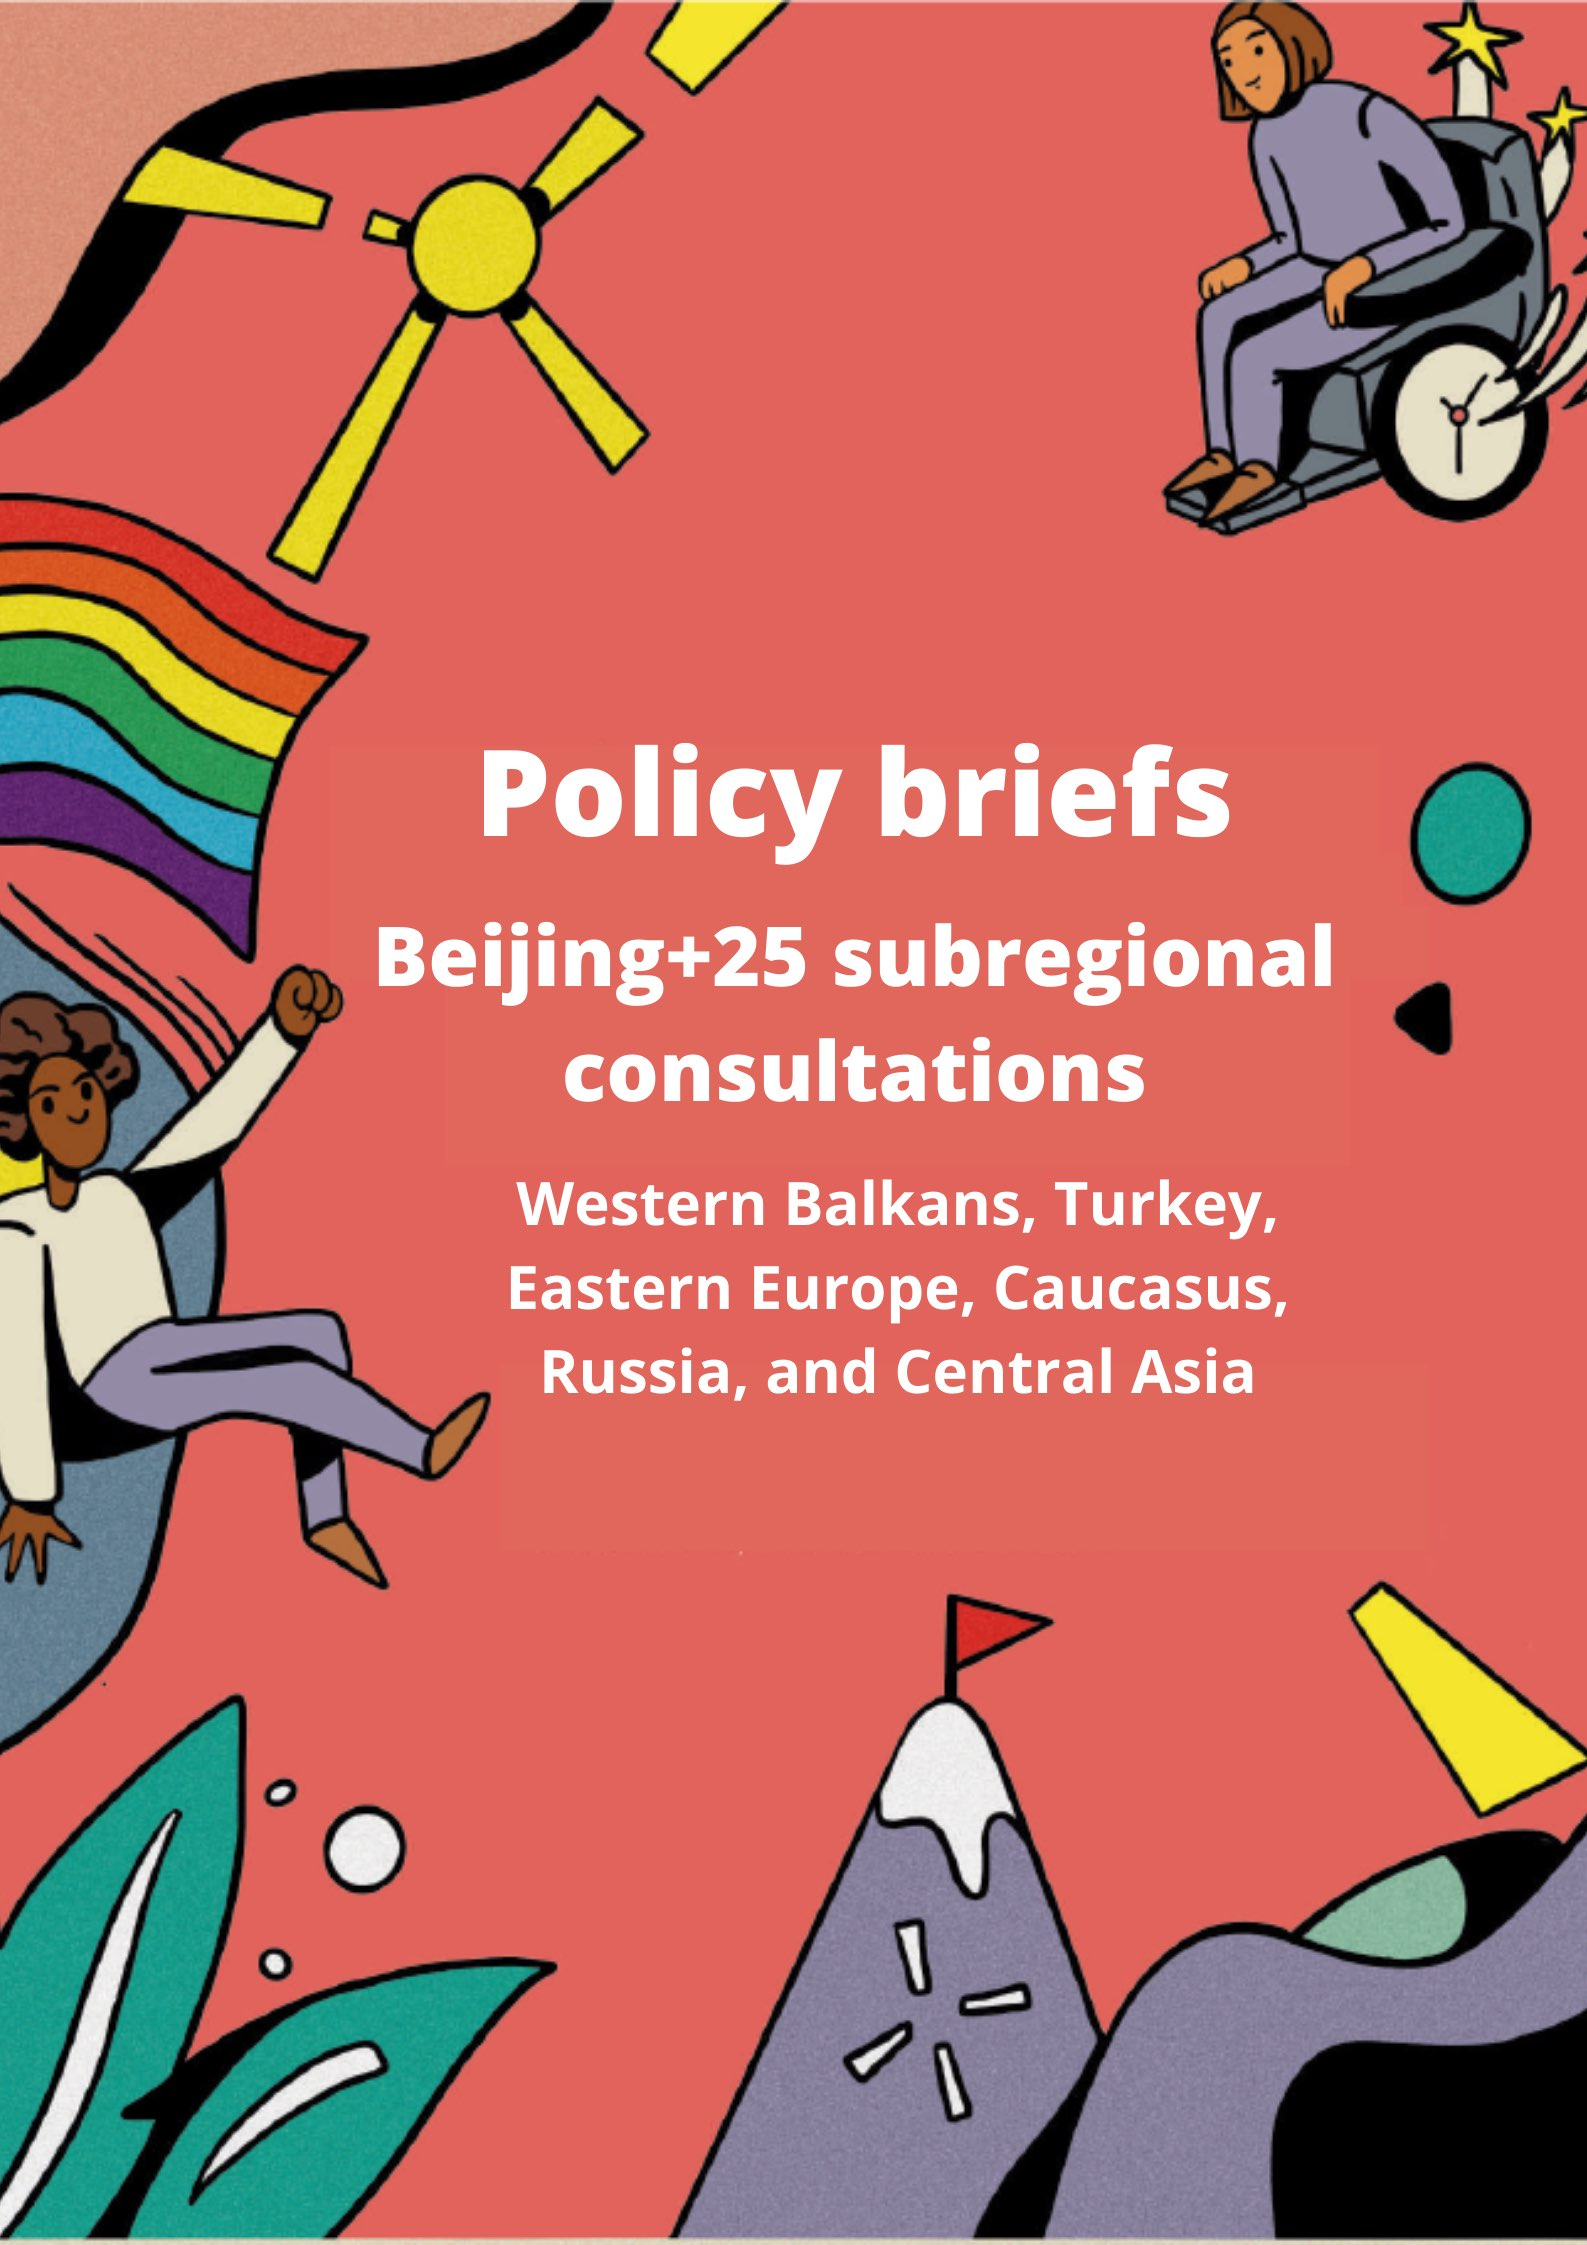 Policy brief cover with subregions in title